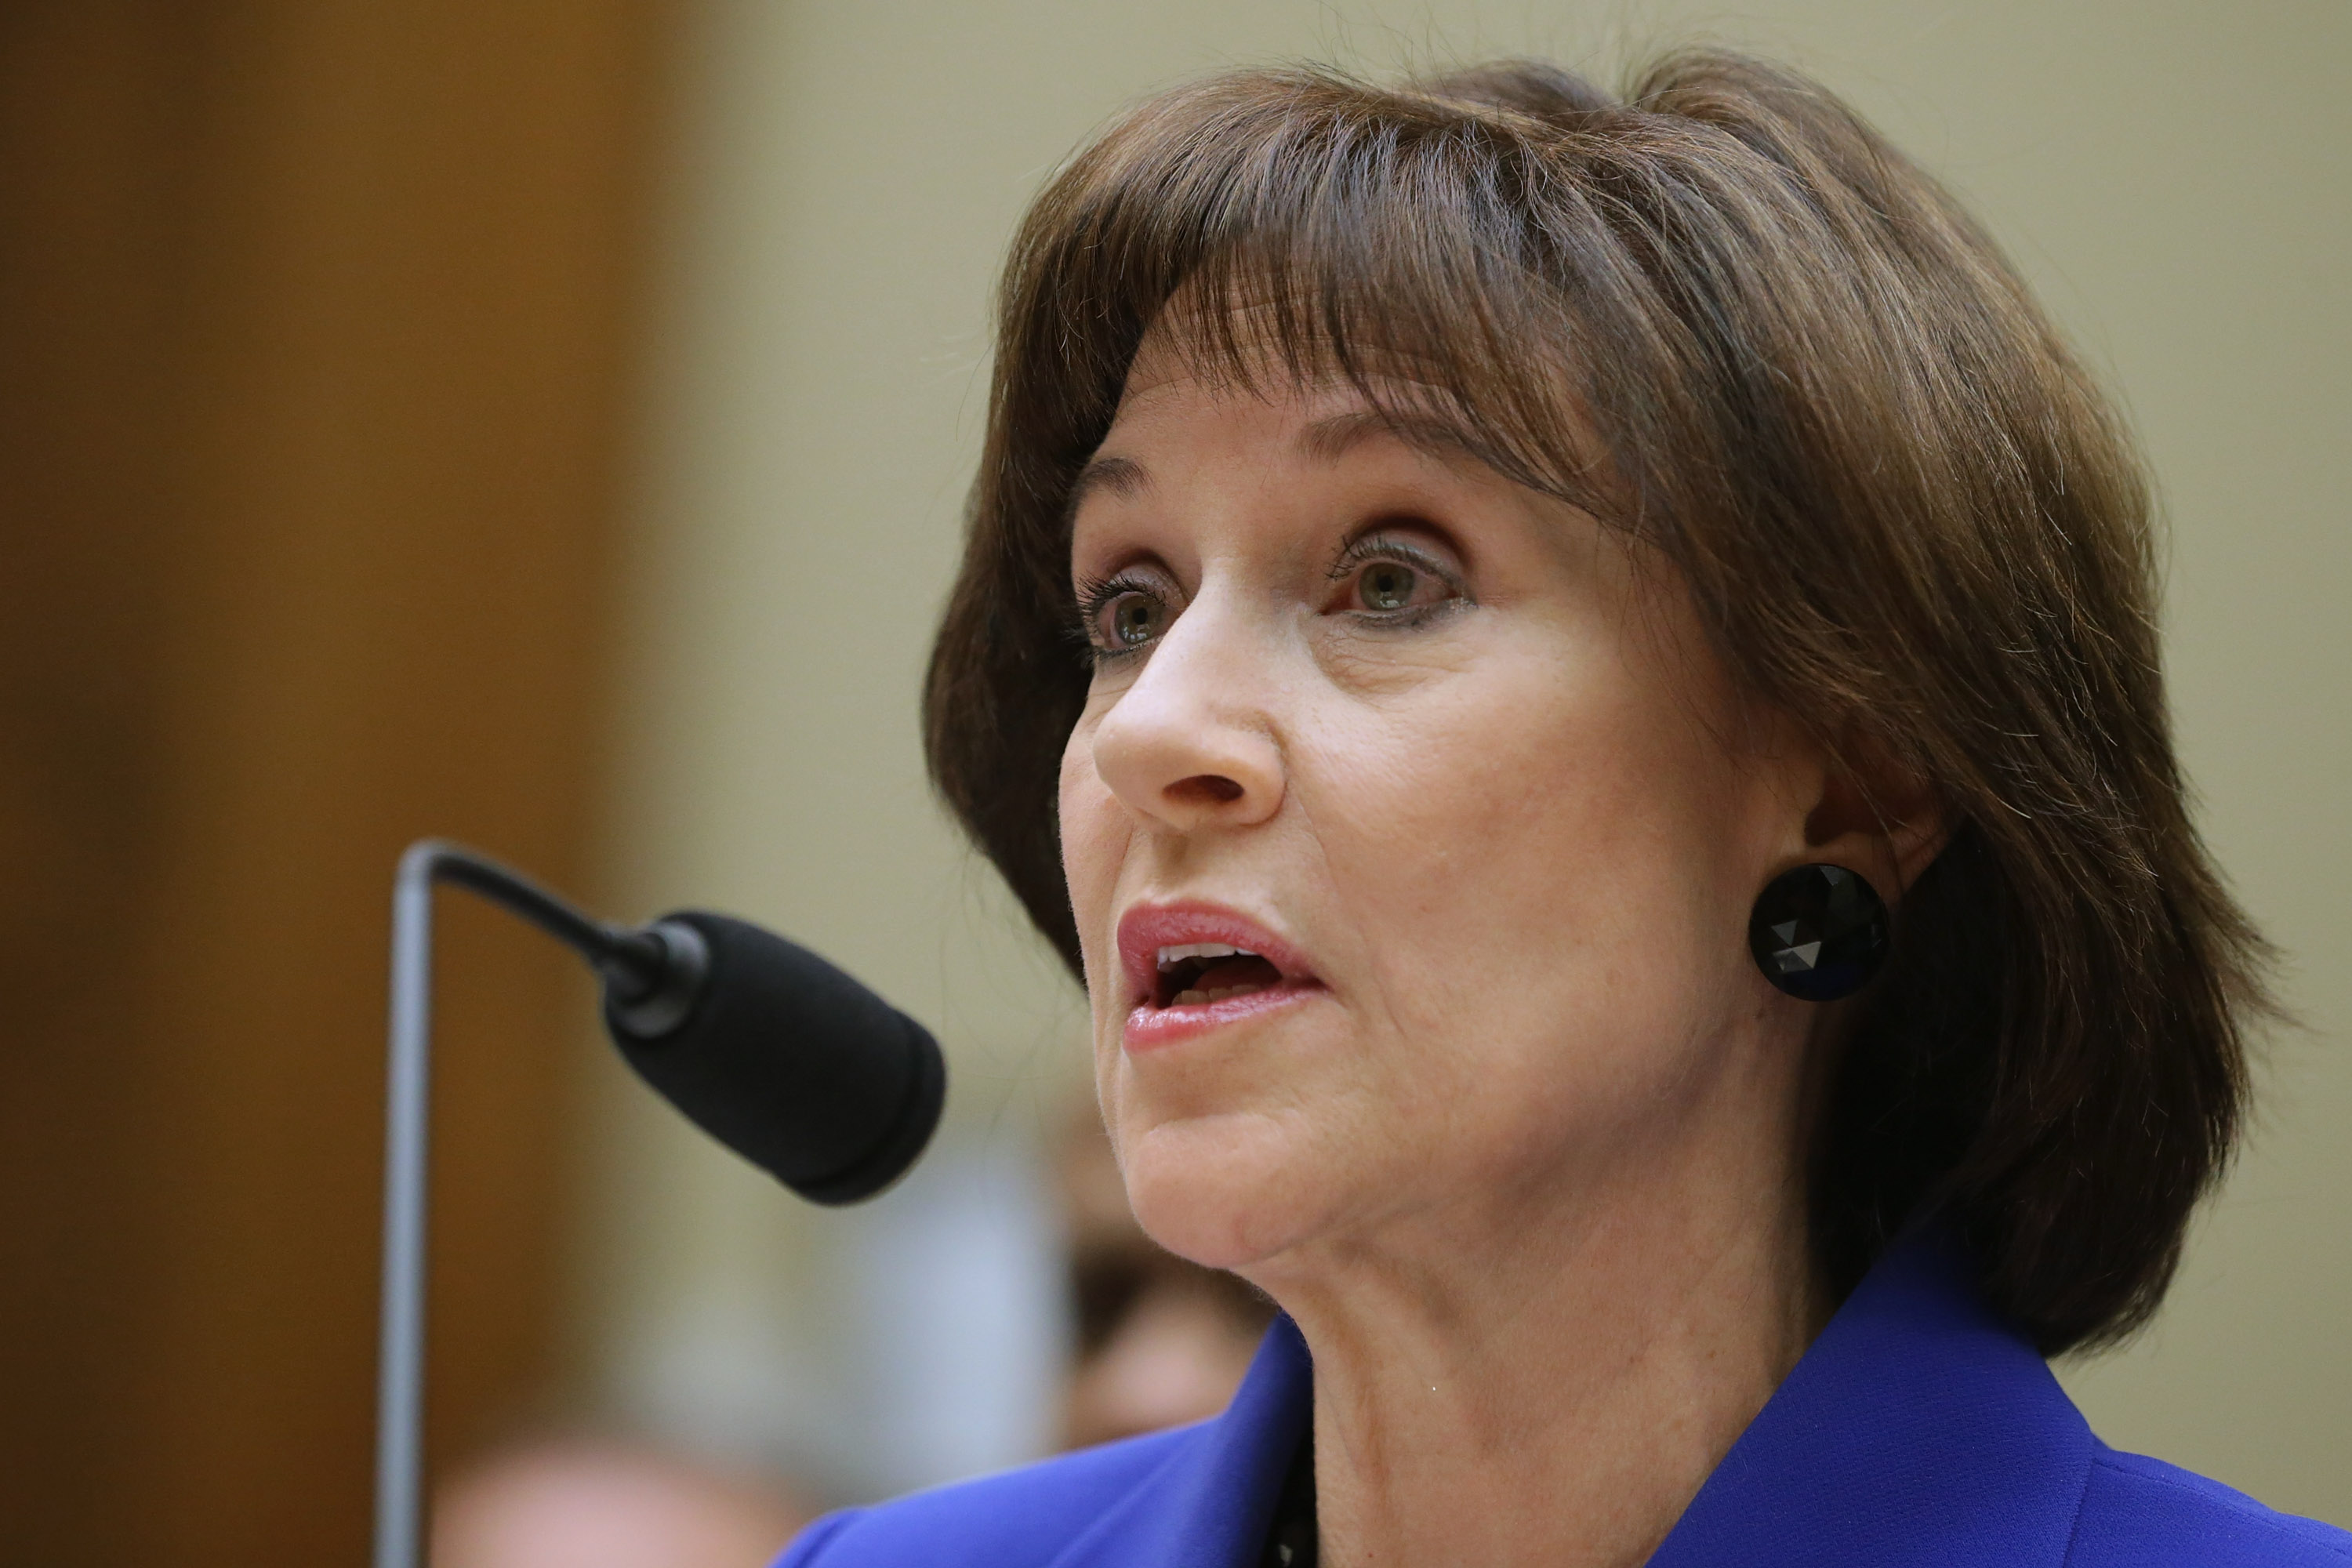 Former Internal Revenue Service official Lois Lerner exercises her Fifth Amendment right not to speak about the IRS targeting investigation before the House Oversight and Government Reform Committee during a hearing in the Rayburn House Office Building on March 5, 2014 in Washington.